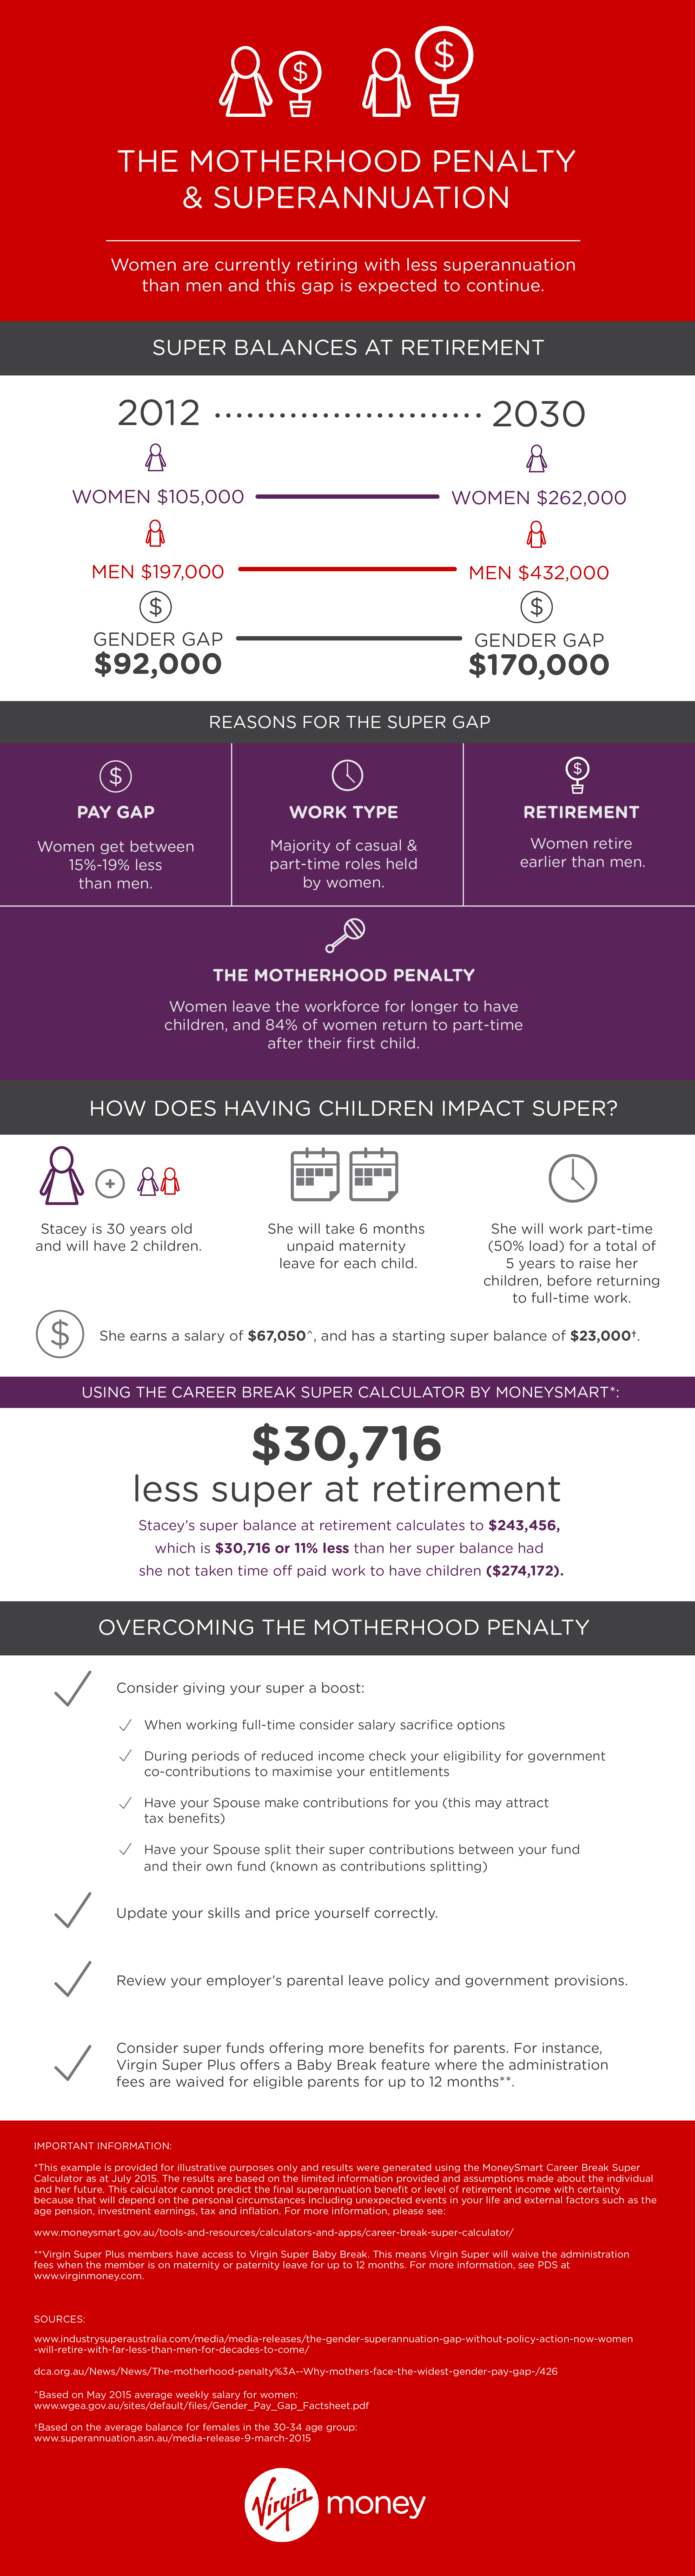 The Motherhood Penalty and Superannuation